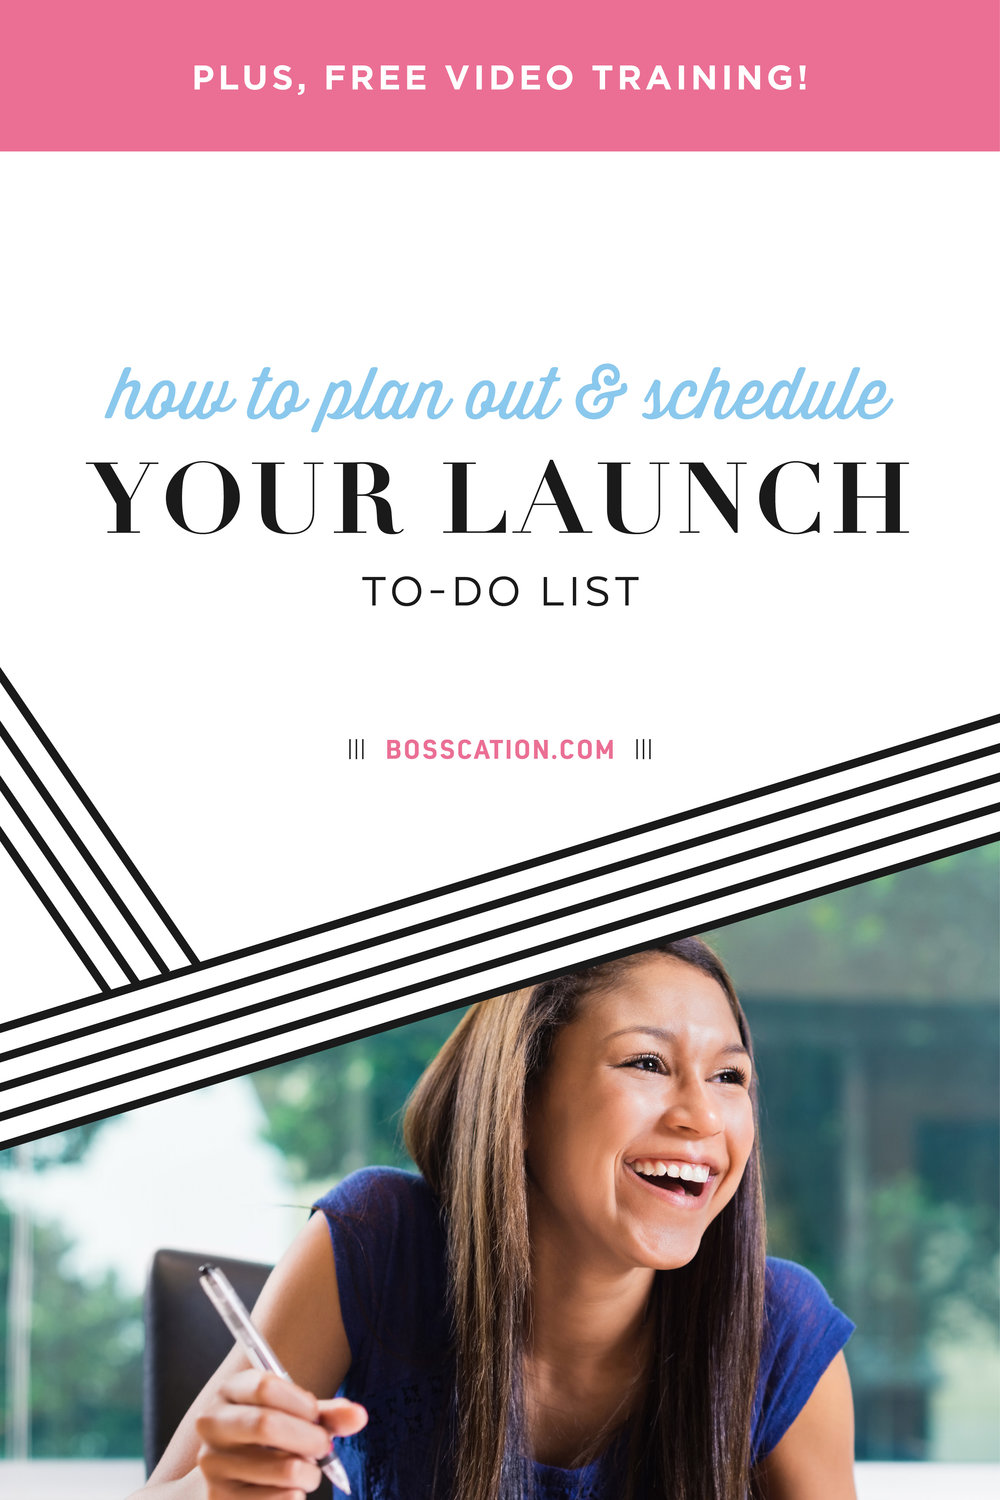 How to plan out and schedule your launch to-do list so you actually know WHAT to work on, and how to prioritize each task!